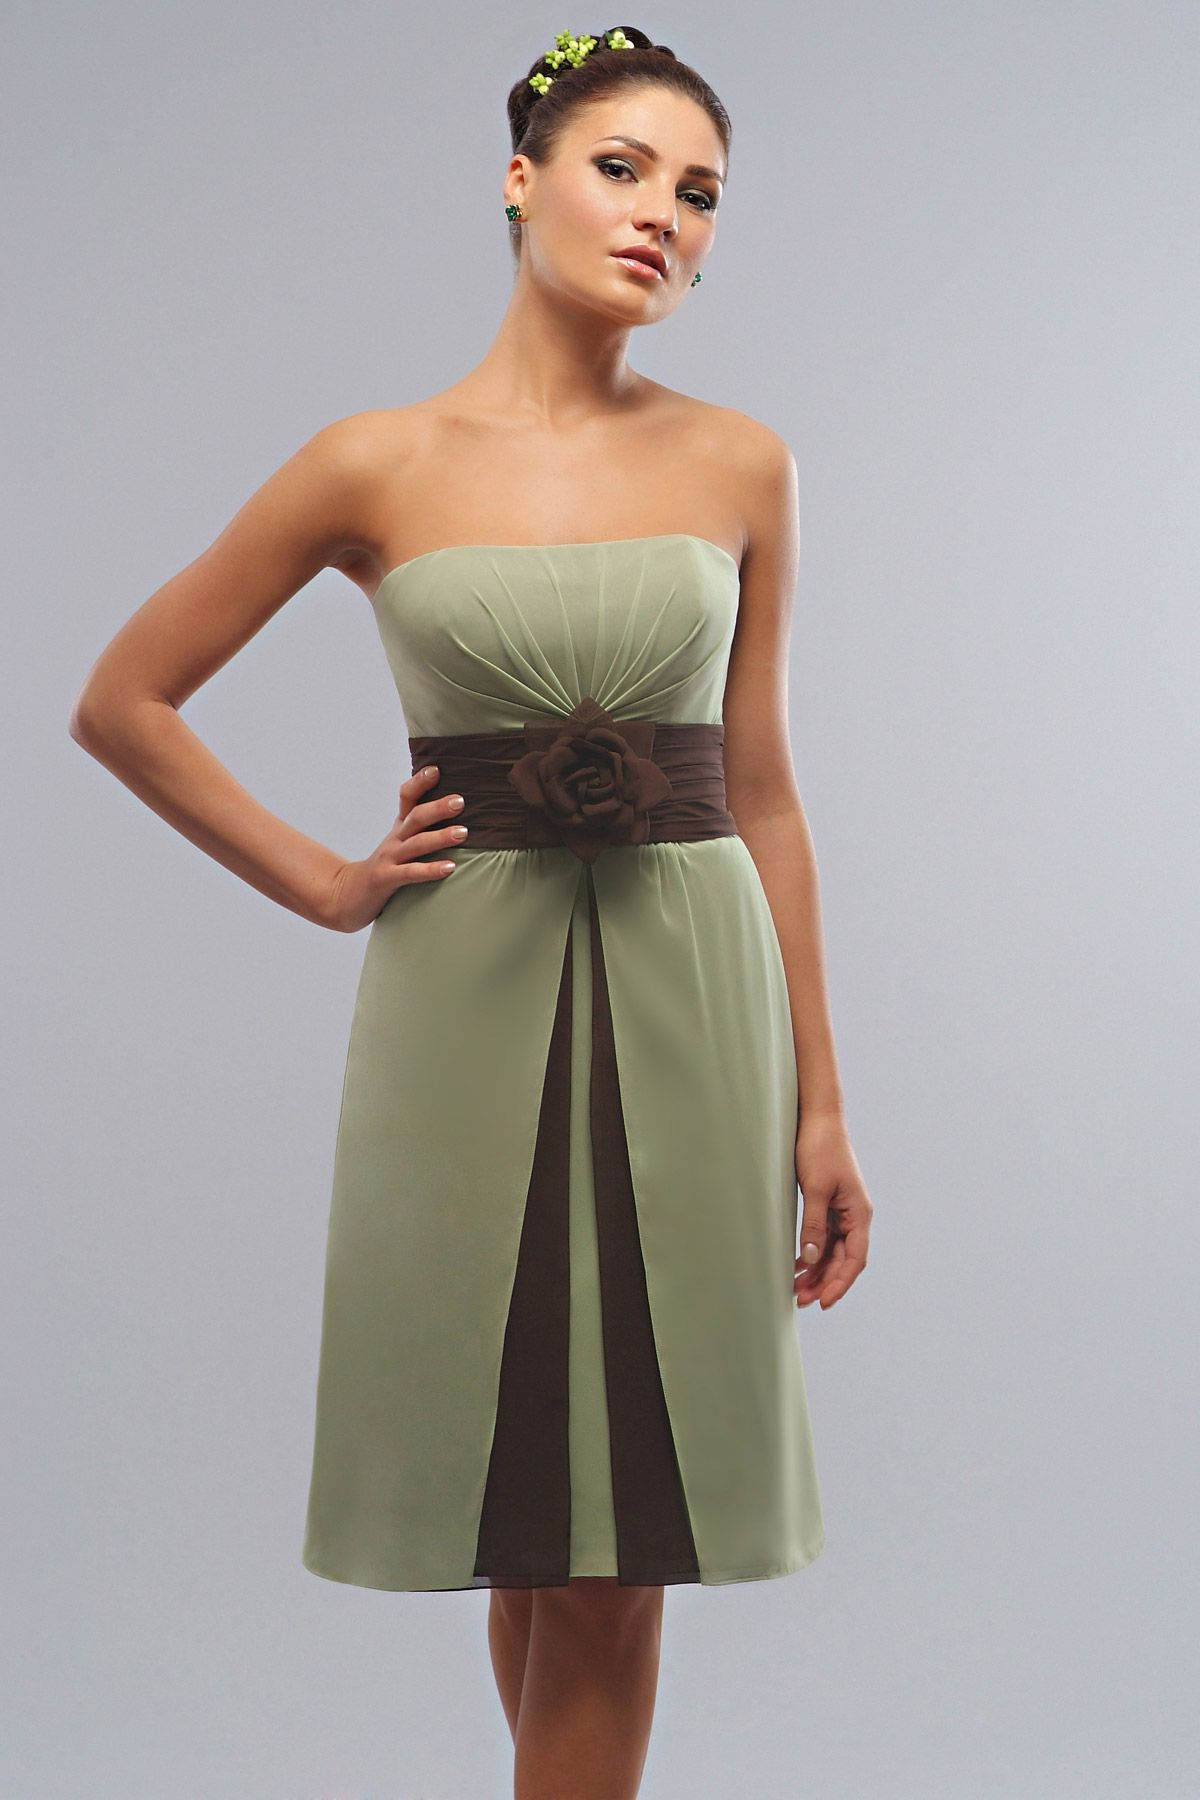 Natural wedding dresses  pretty sleeveless with natural waist dress for bridesmaid